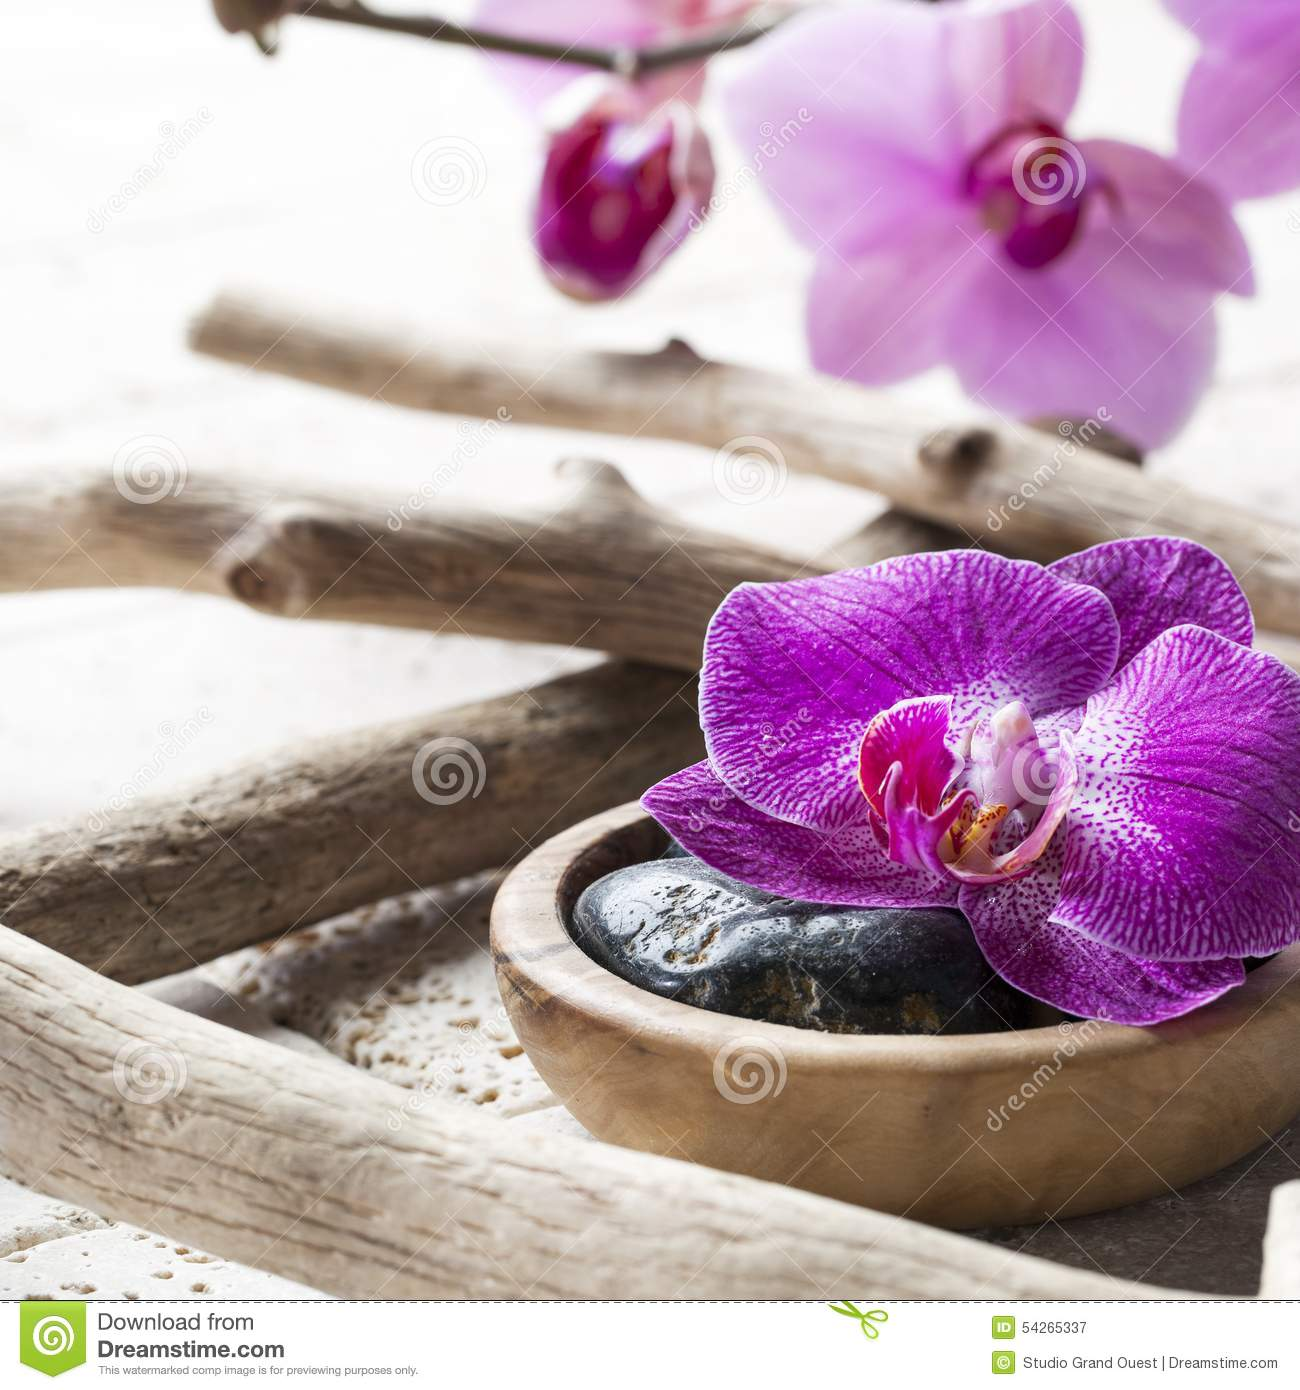 zen spa decor for ayurveda spirit stock photo image 54265337. Black Bedroom Furniture Sets. Home Design Ideas